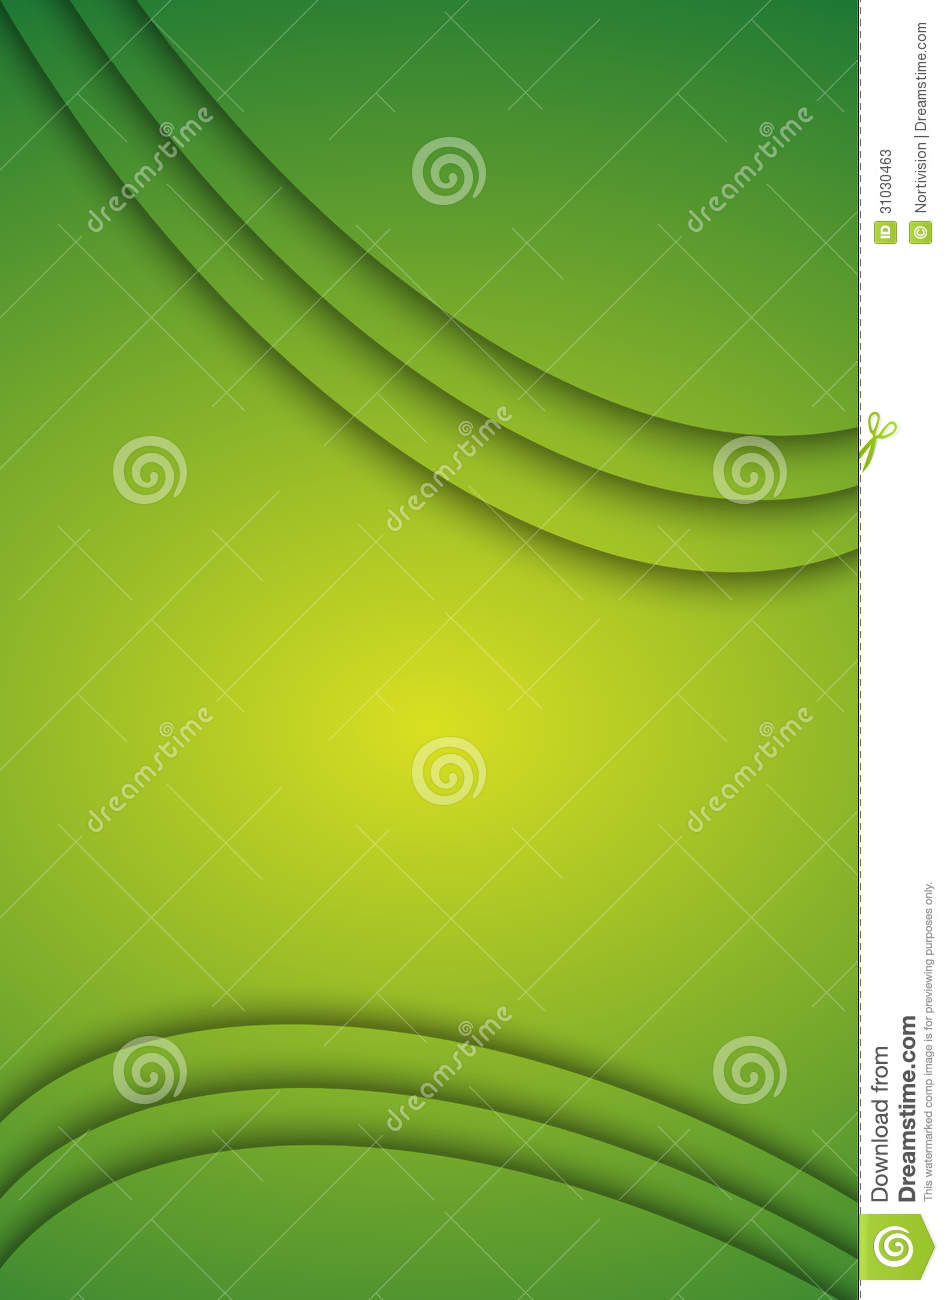 Abstract Green Vertical Background Stock Photos - Image ...